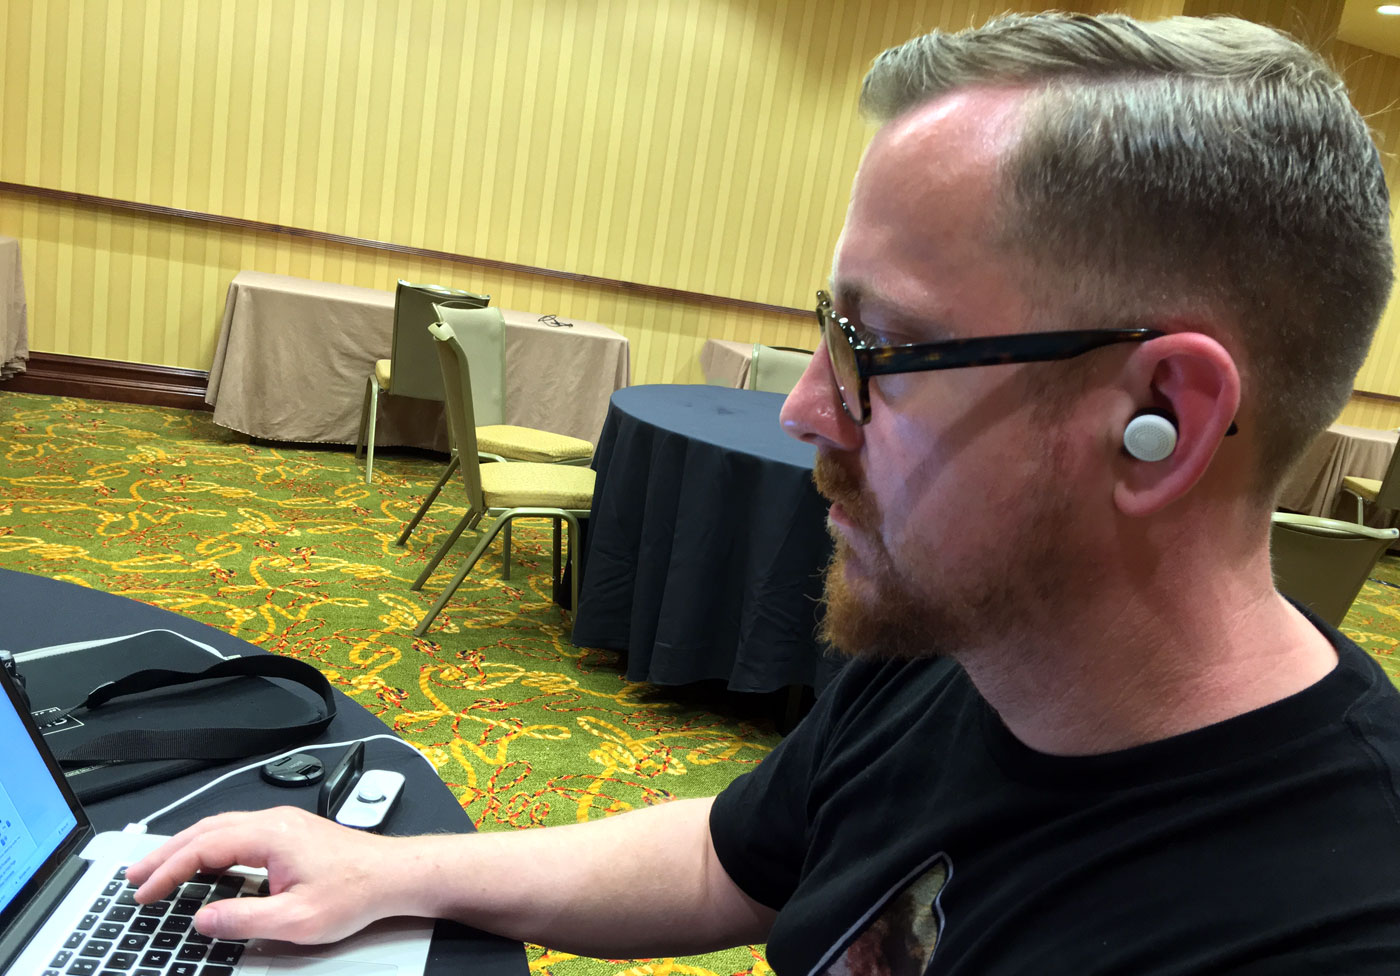 SXSW showed me Here's Active Listening buds are a sound idea